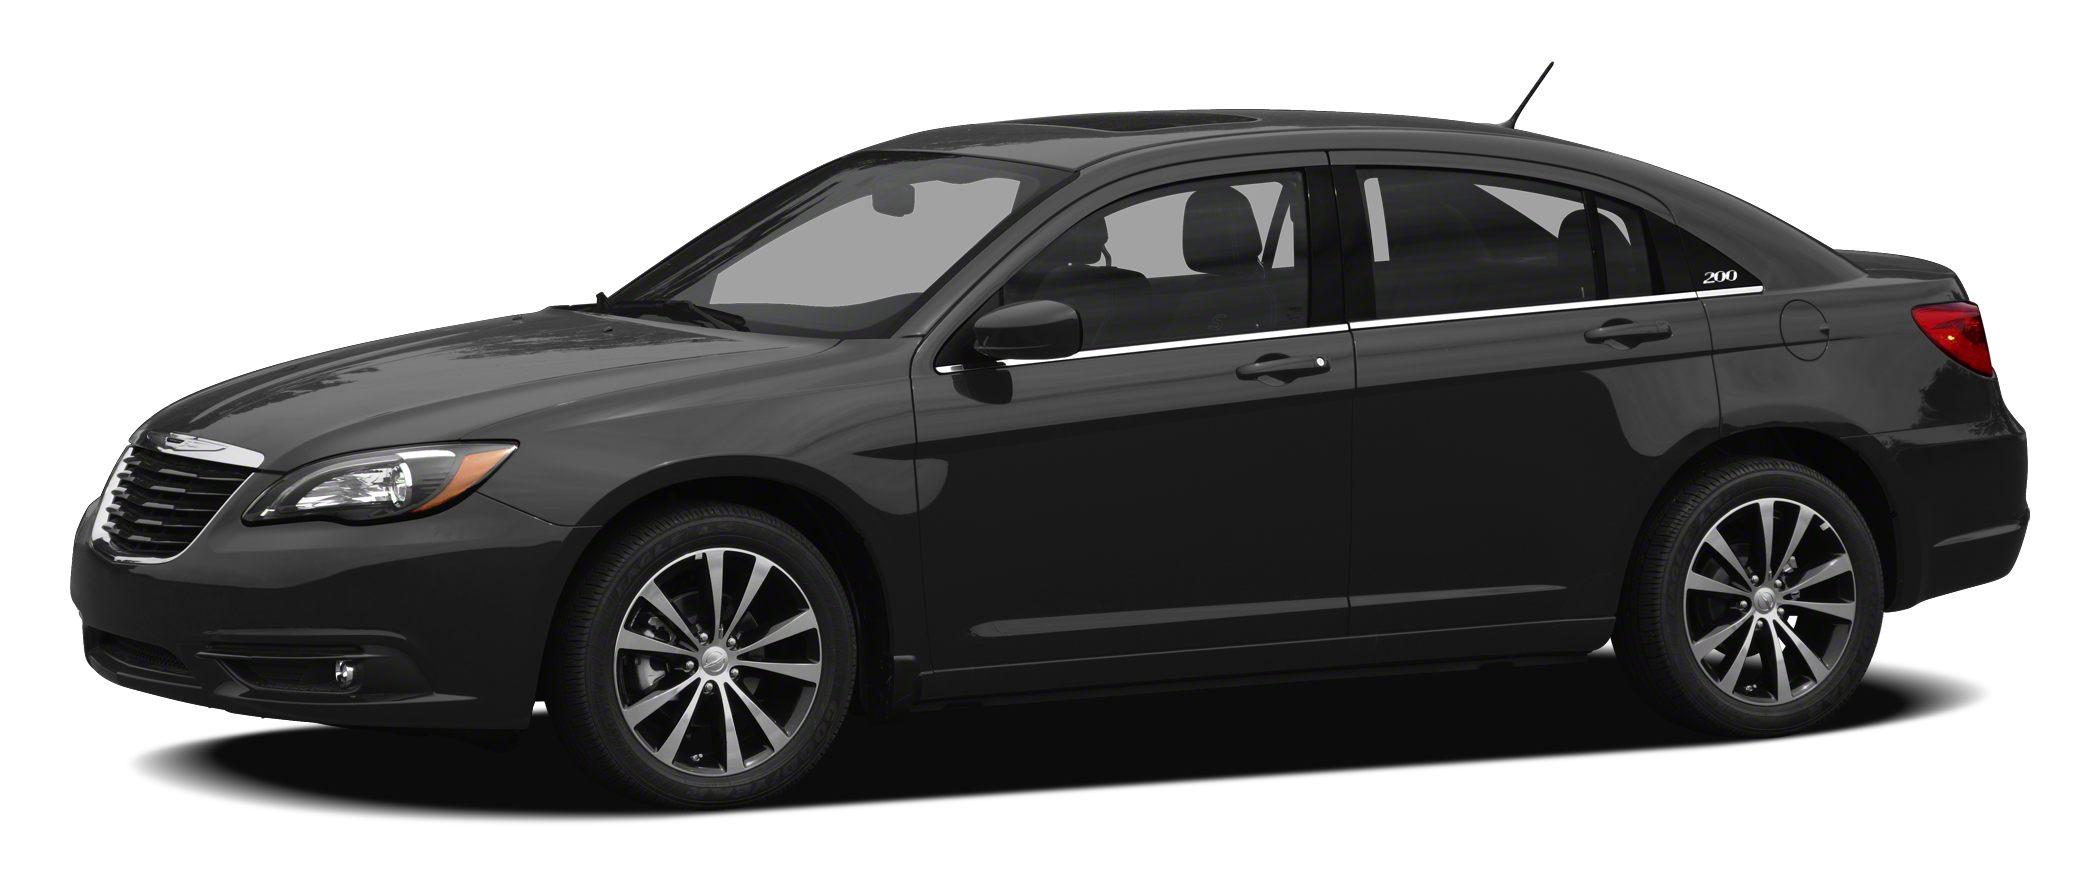 2012 Chrysler 200 S Price does not include tax title registration documentation fee or other ap